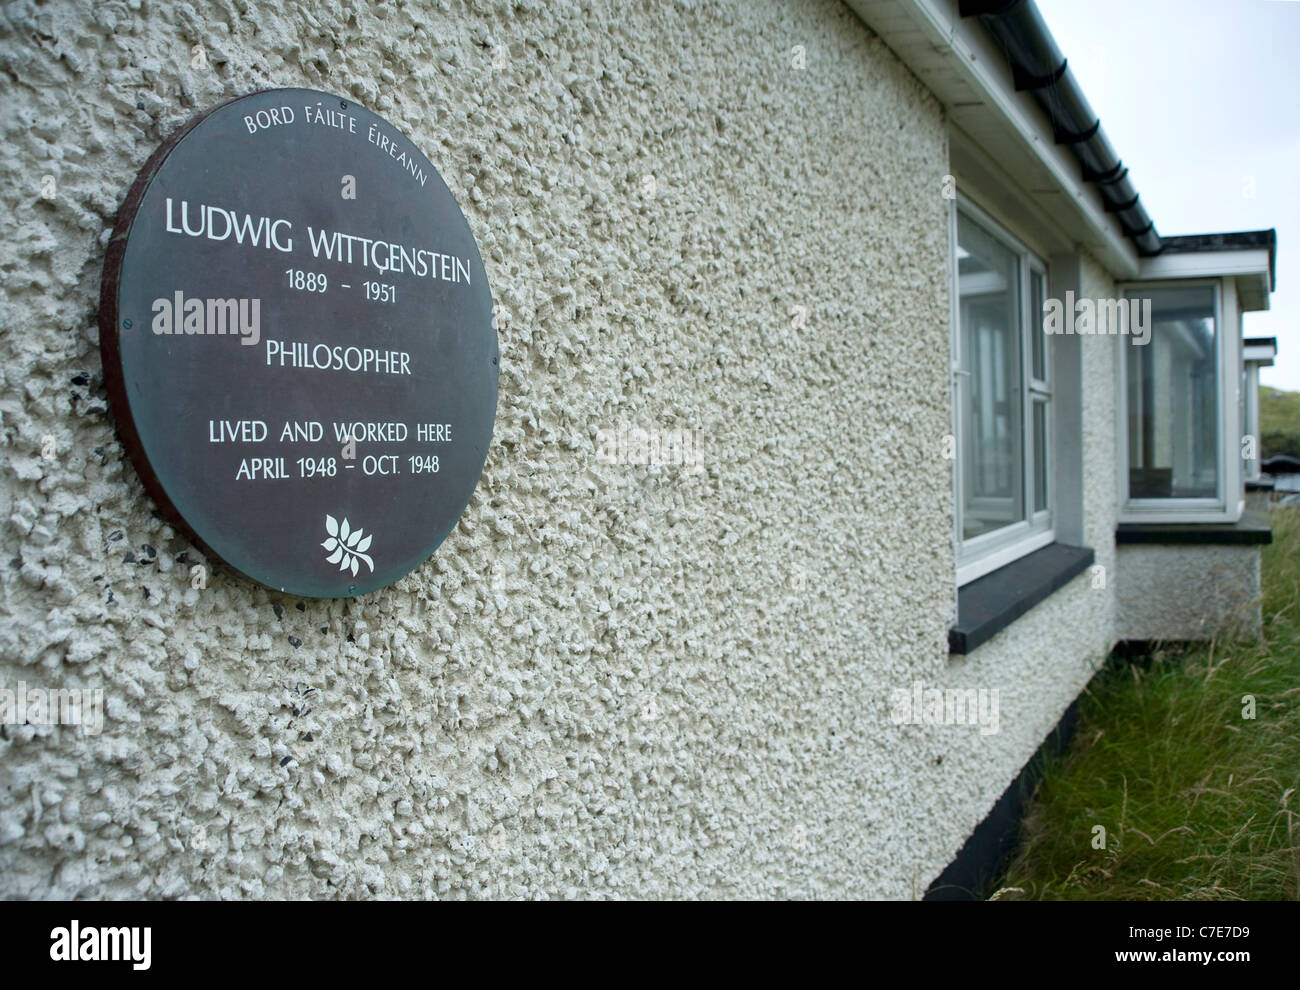 House where Ludwig Wittgenstein lived & worked, Rossroe, Killary Harbour. - Stock Image